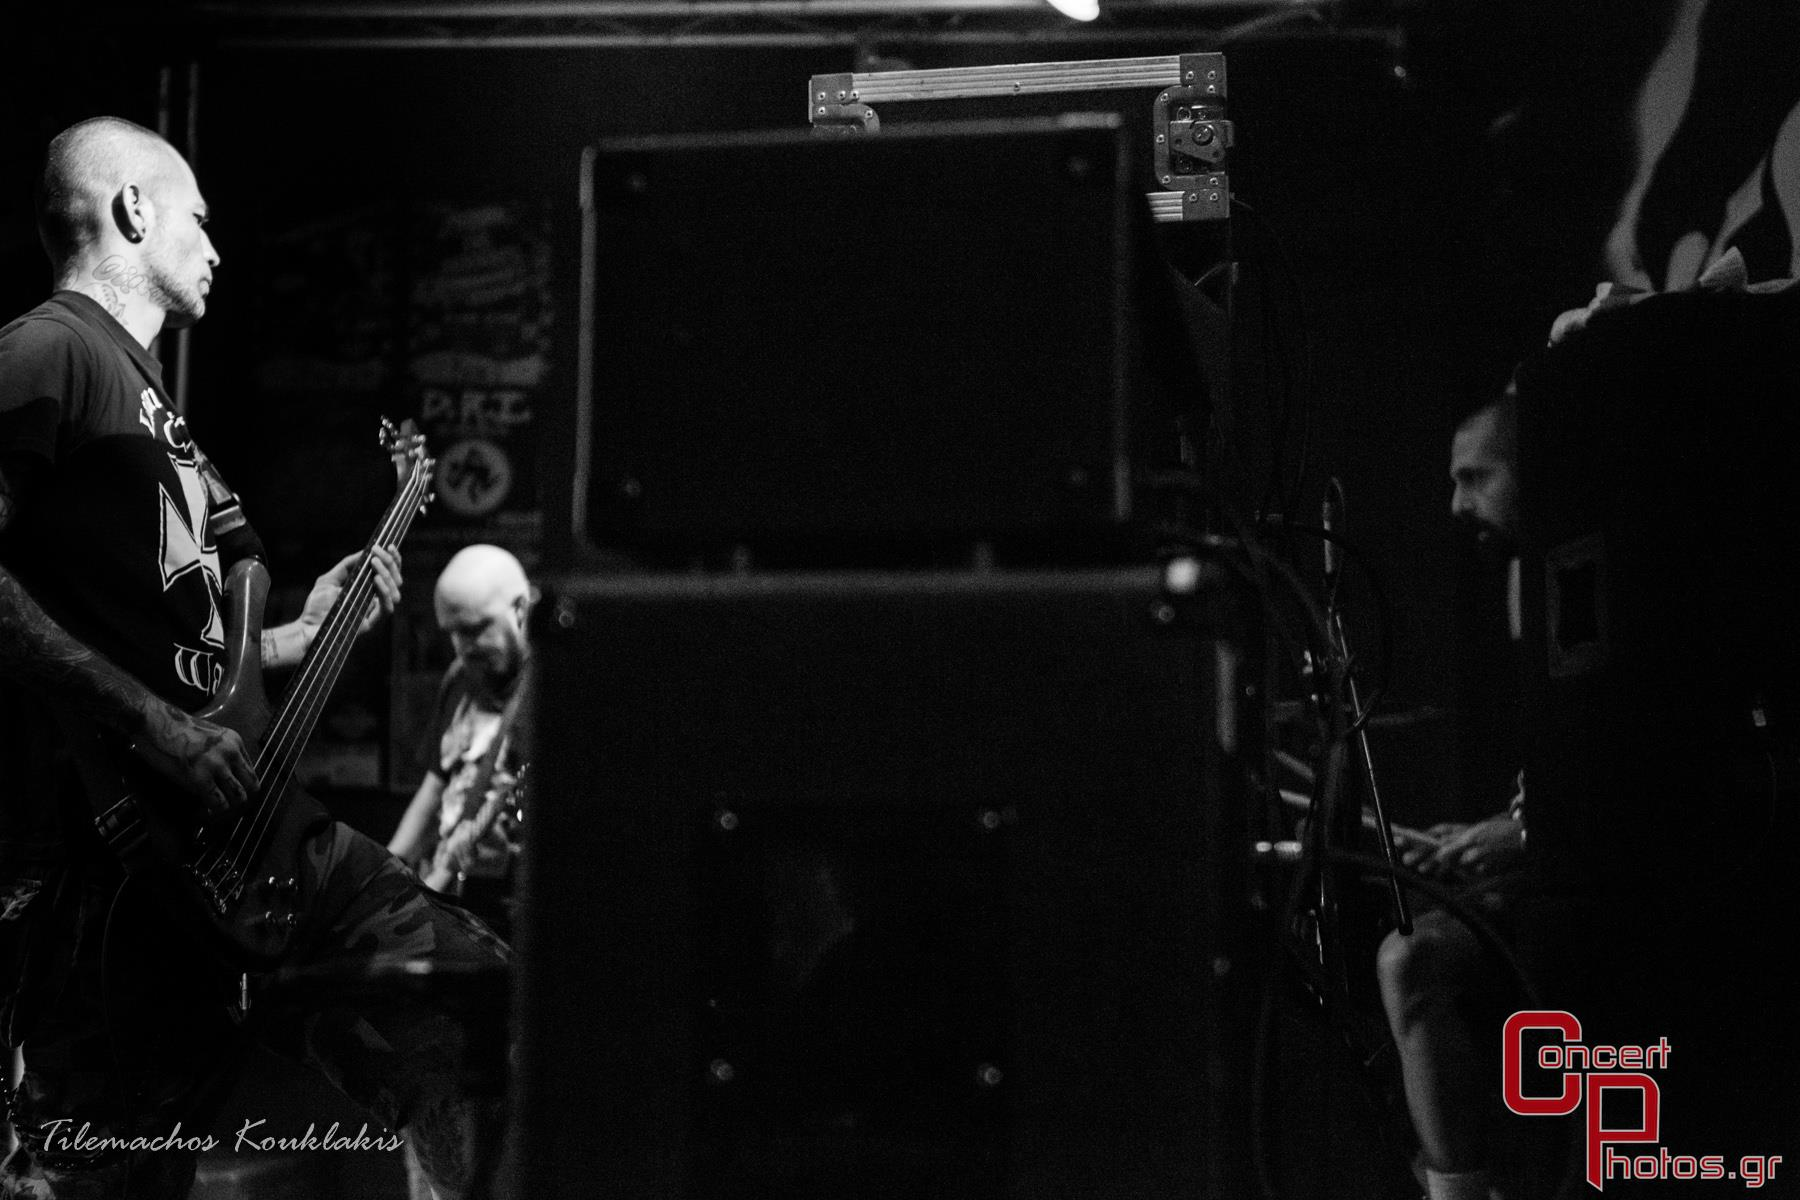 Raised Fist - Endsight - The Locals-Raised Fist photographer:  - The Locals_08